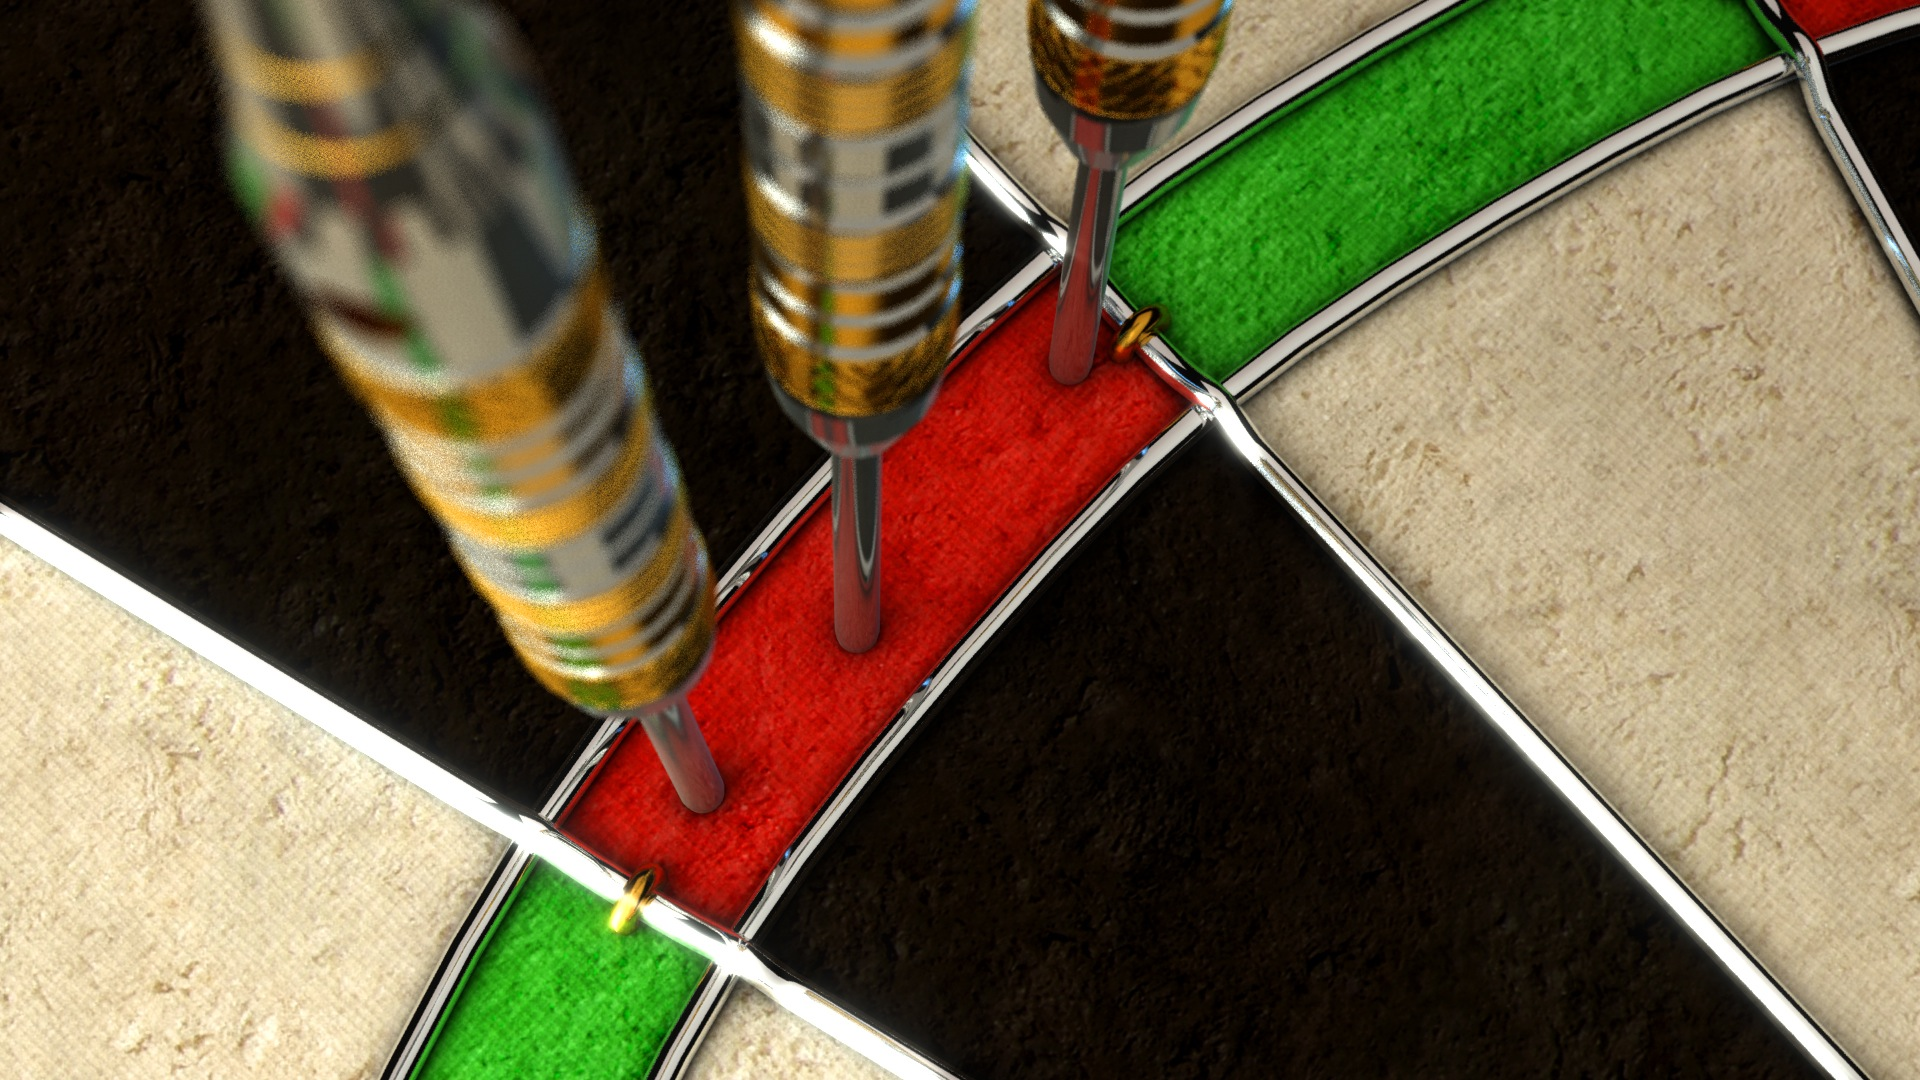 Darts Wallpaper